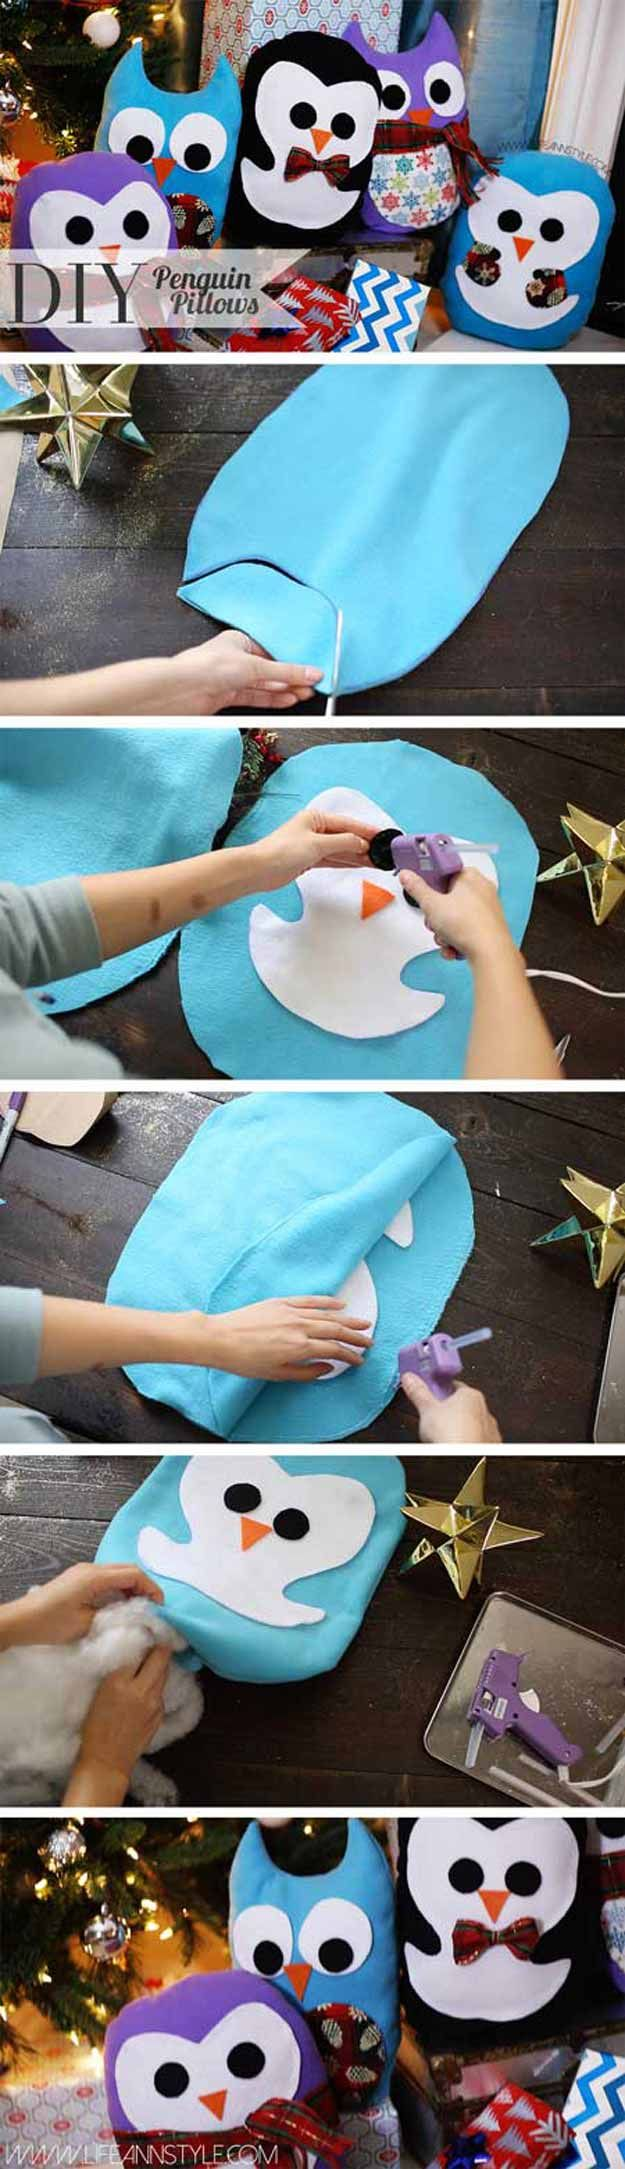 DIY Penguin Pillow | DIY Pillow Ideas